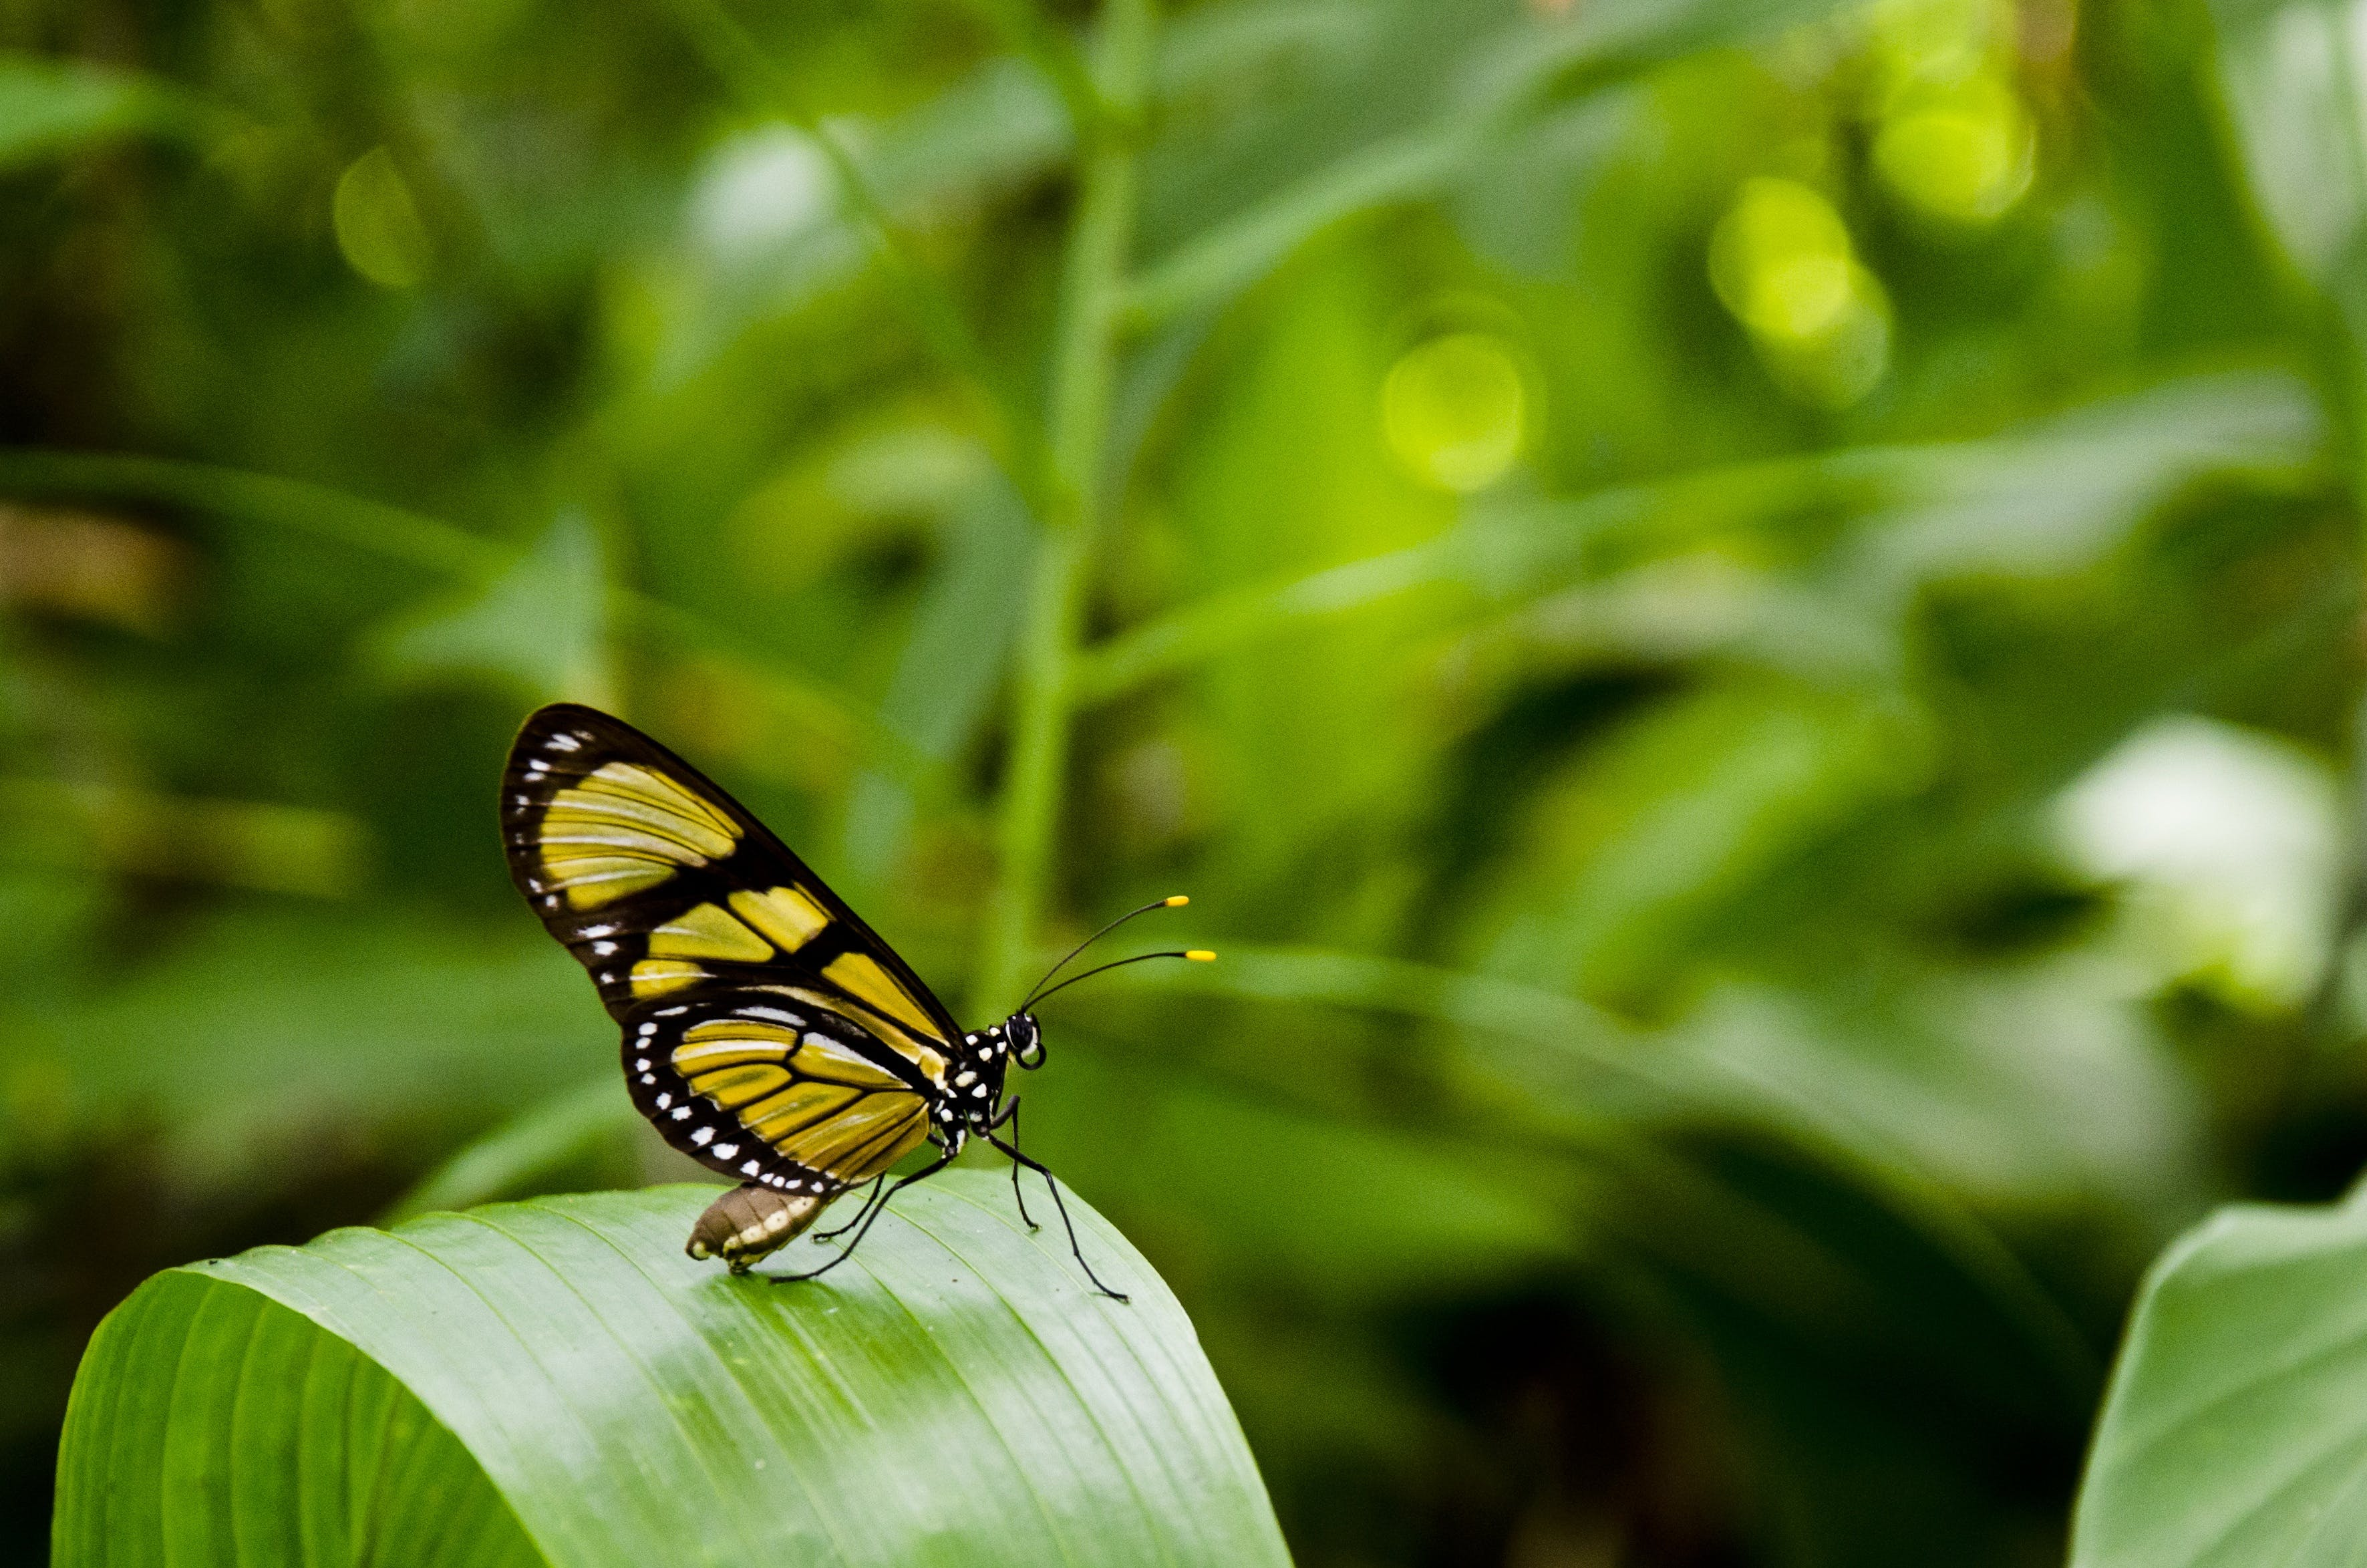 Yellow and Black Butterfly on Top of Green Leaf